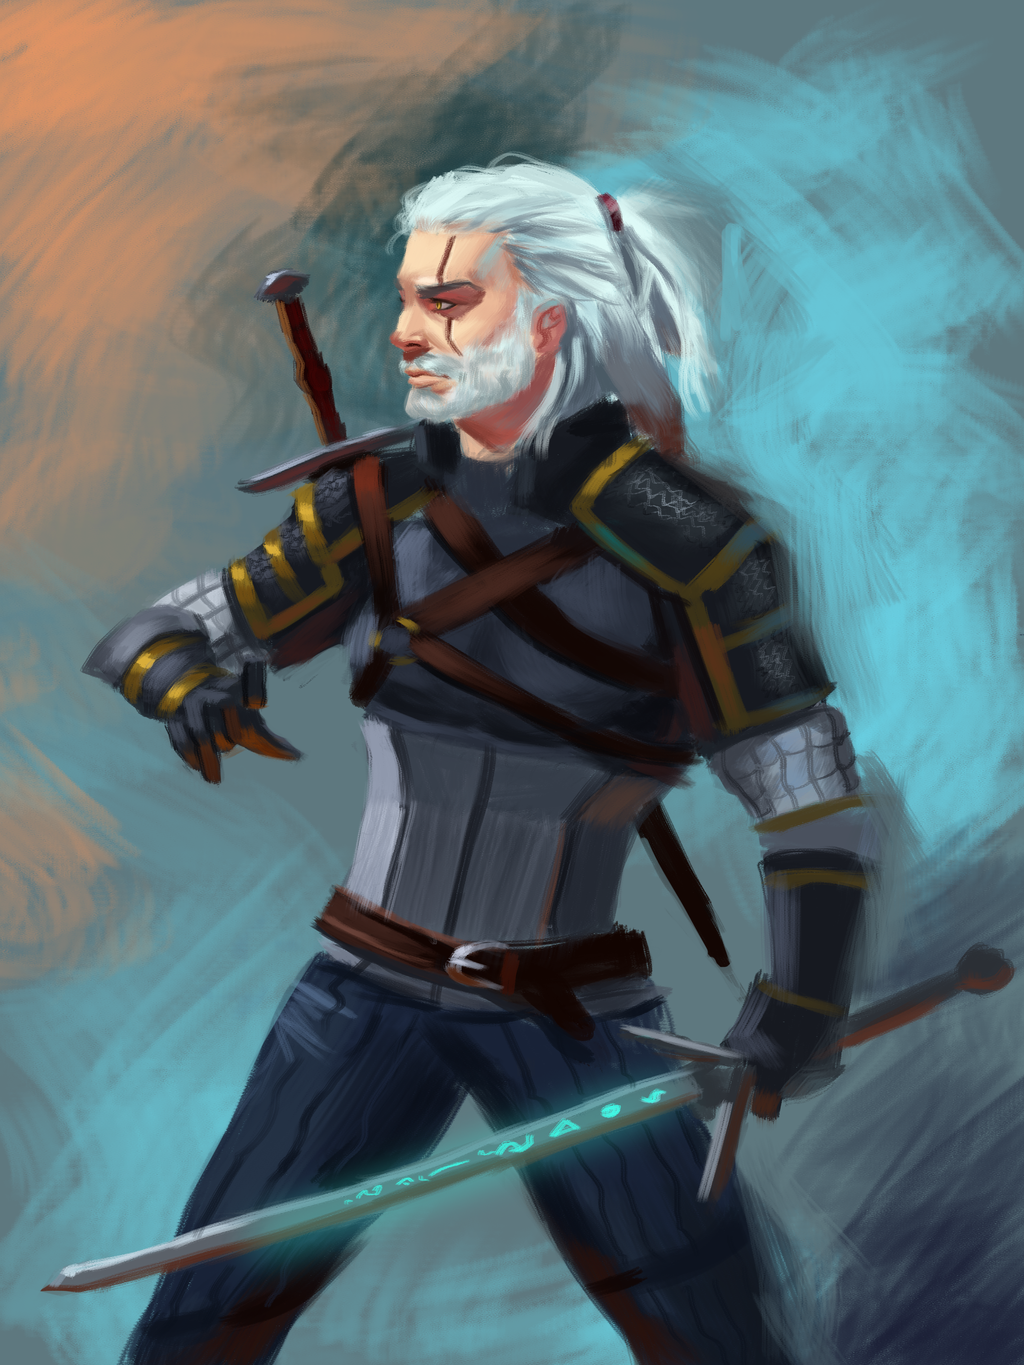 geralt_of_rivia_by_zenbuffalo-db127ht.png - Witcher 3: Wild Hunt, the